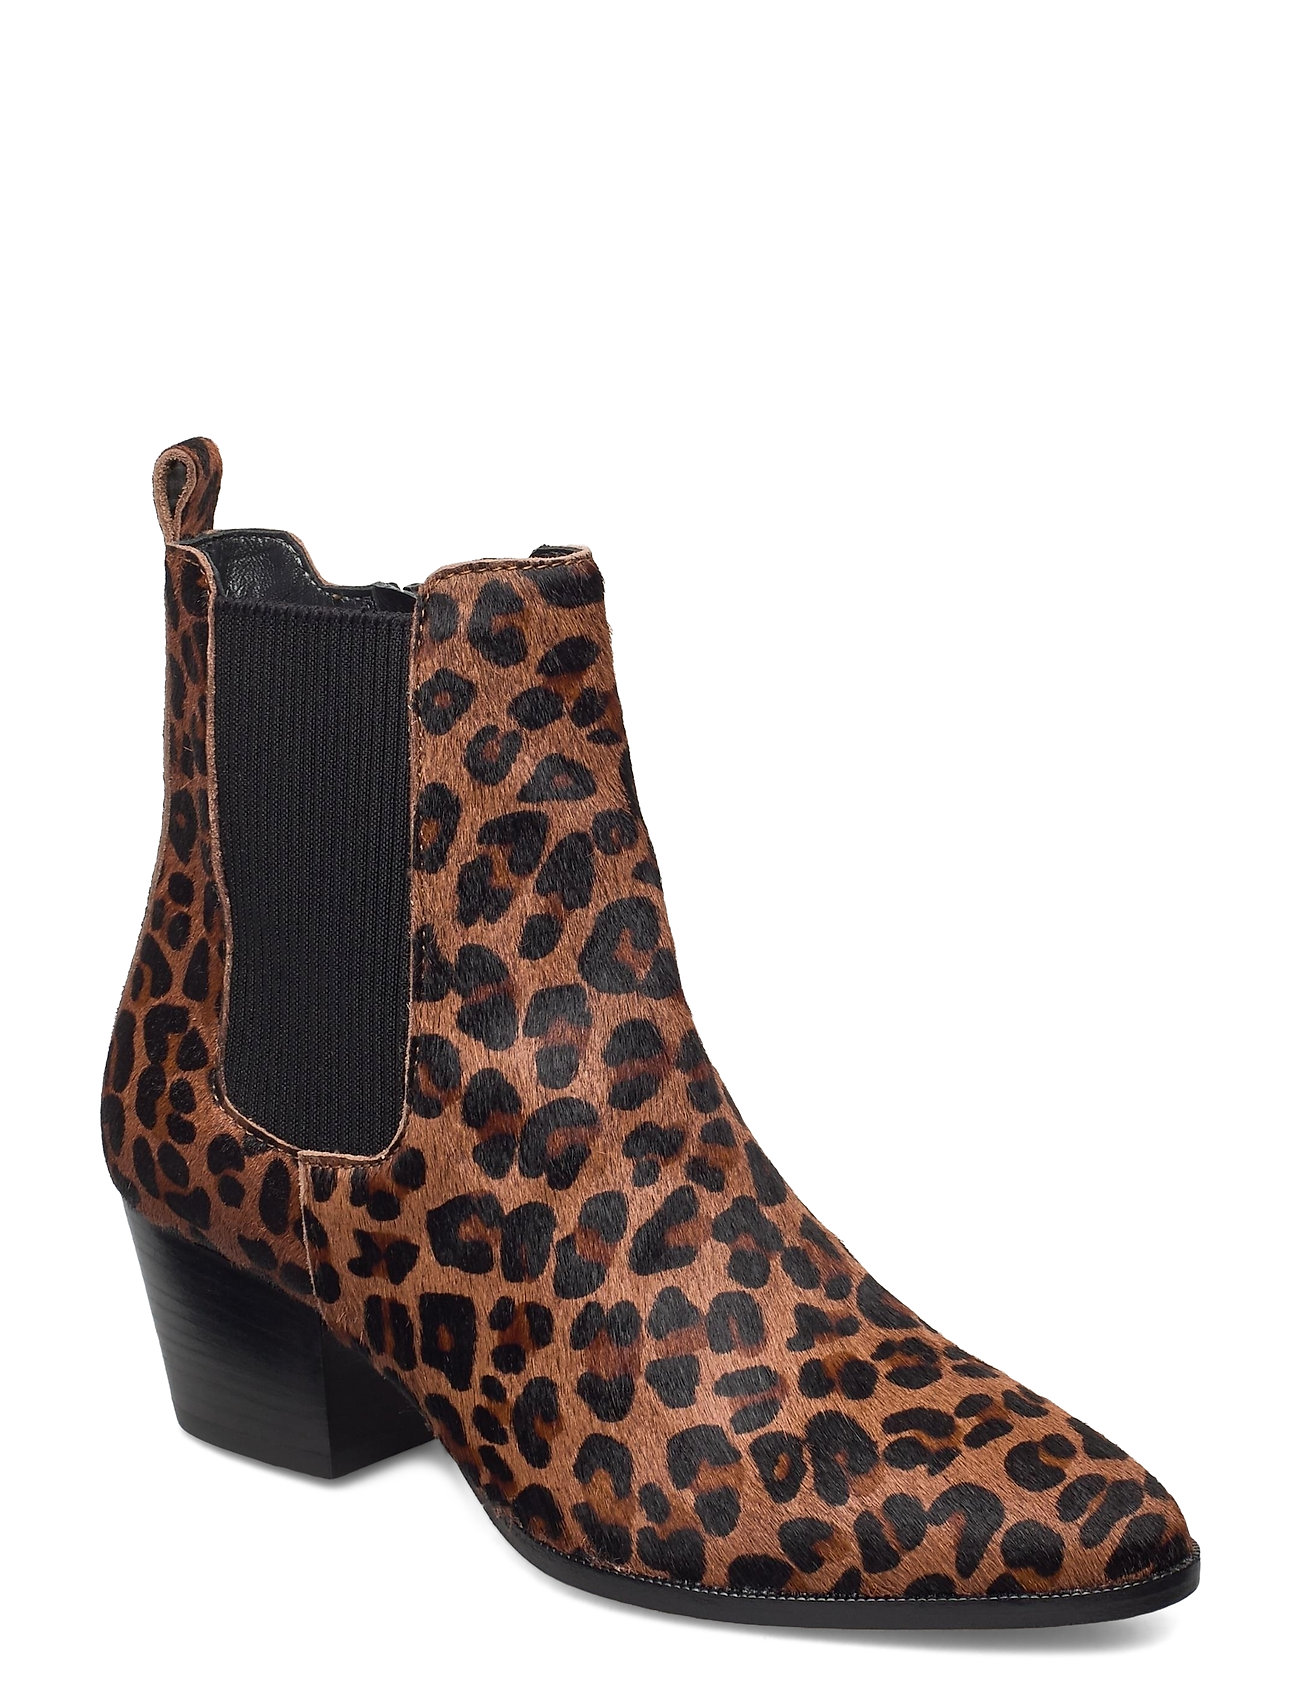 Image of Booties - Block Heel - With Elas Shoes Boots Ankle Boots Ankle Boot - Heel Brun ANGULUS (3475743735)